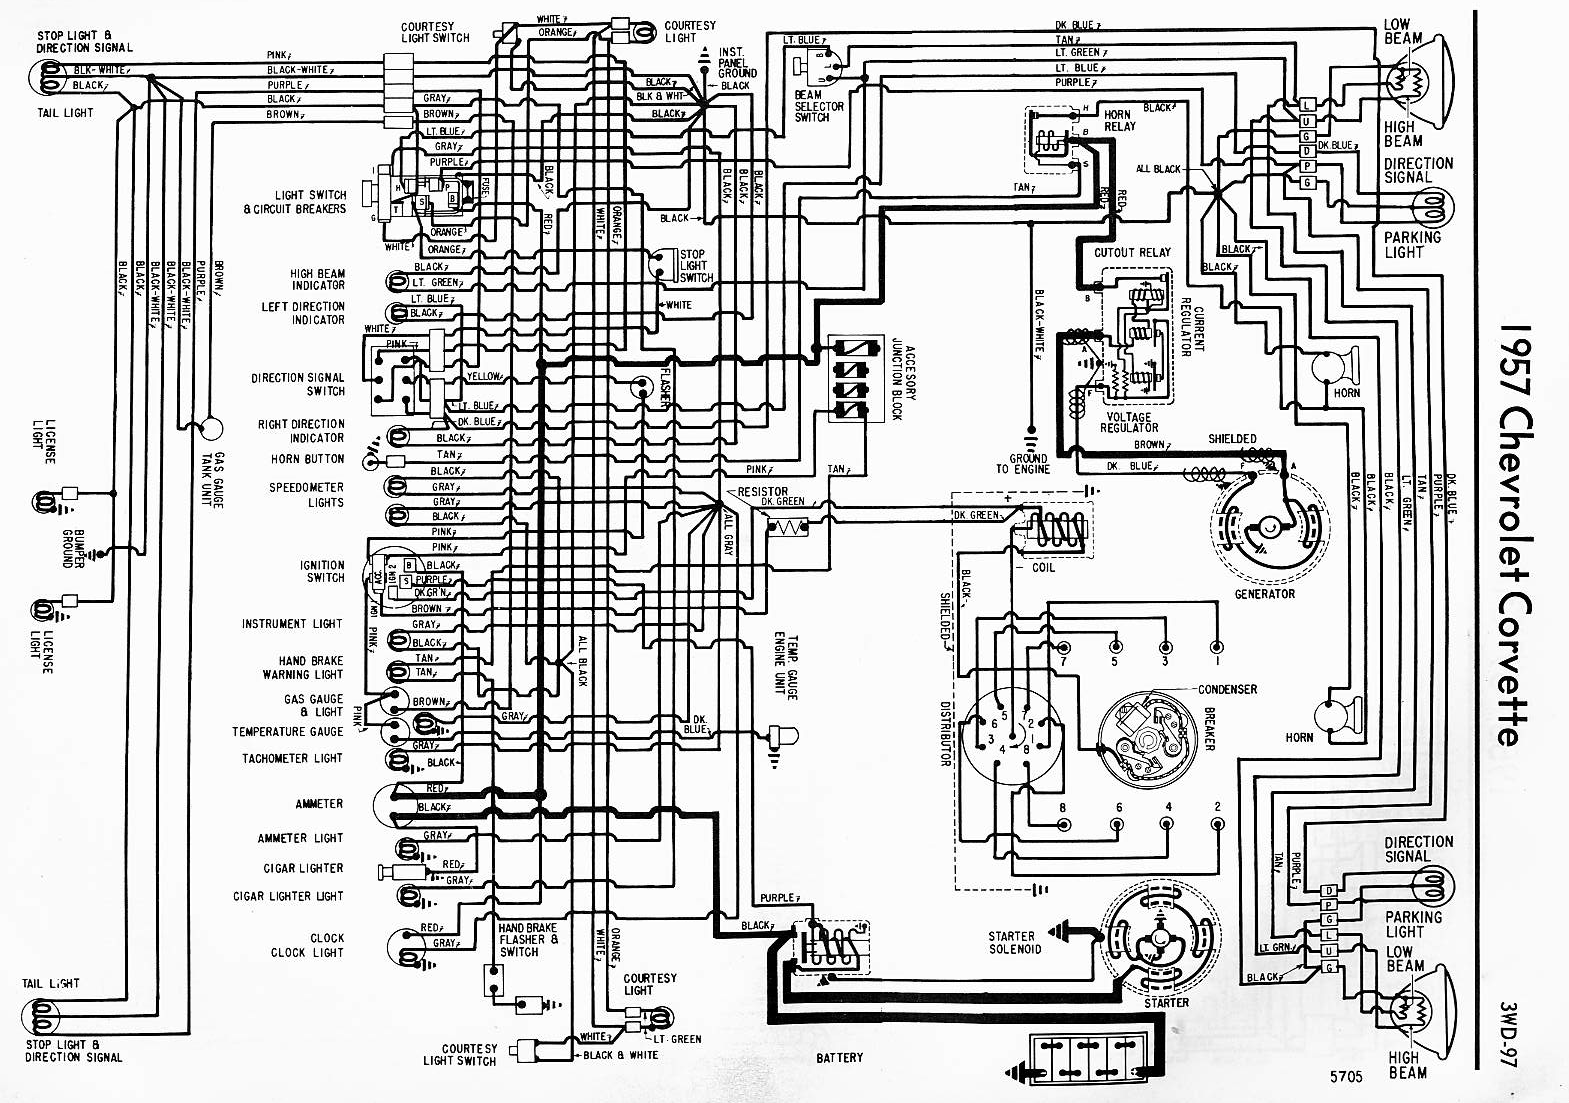 1957 corvette wiring diagram | willcox corvette, inc.  willcox corvette, inc.